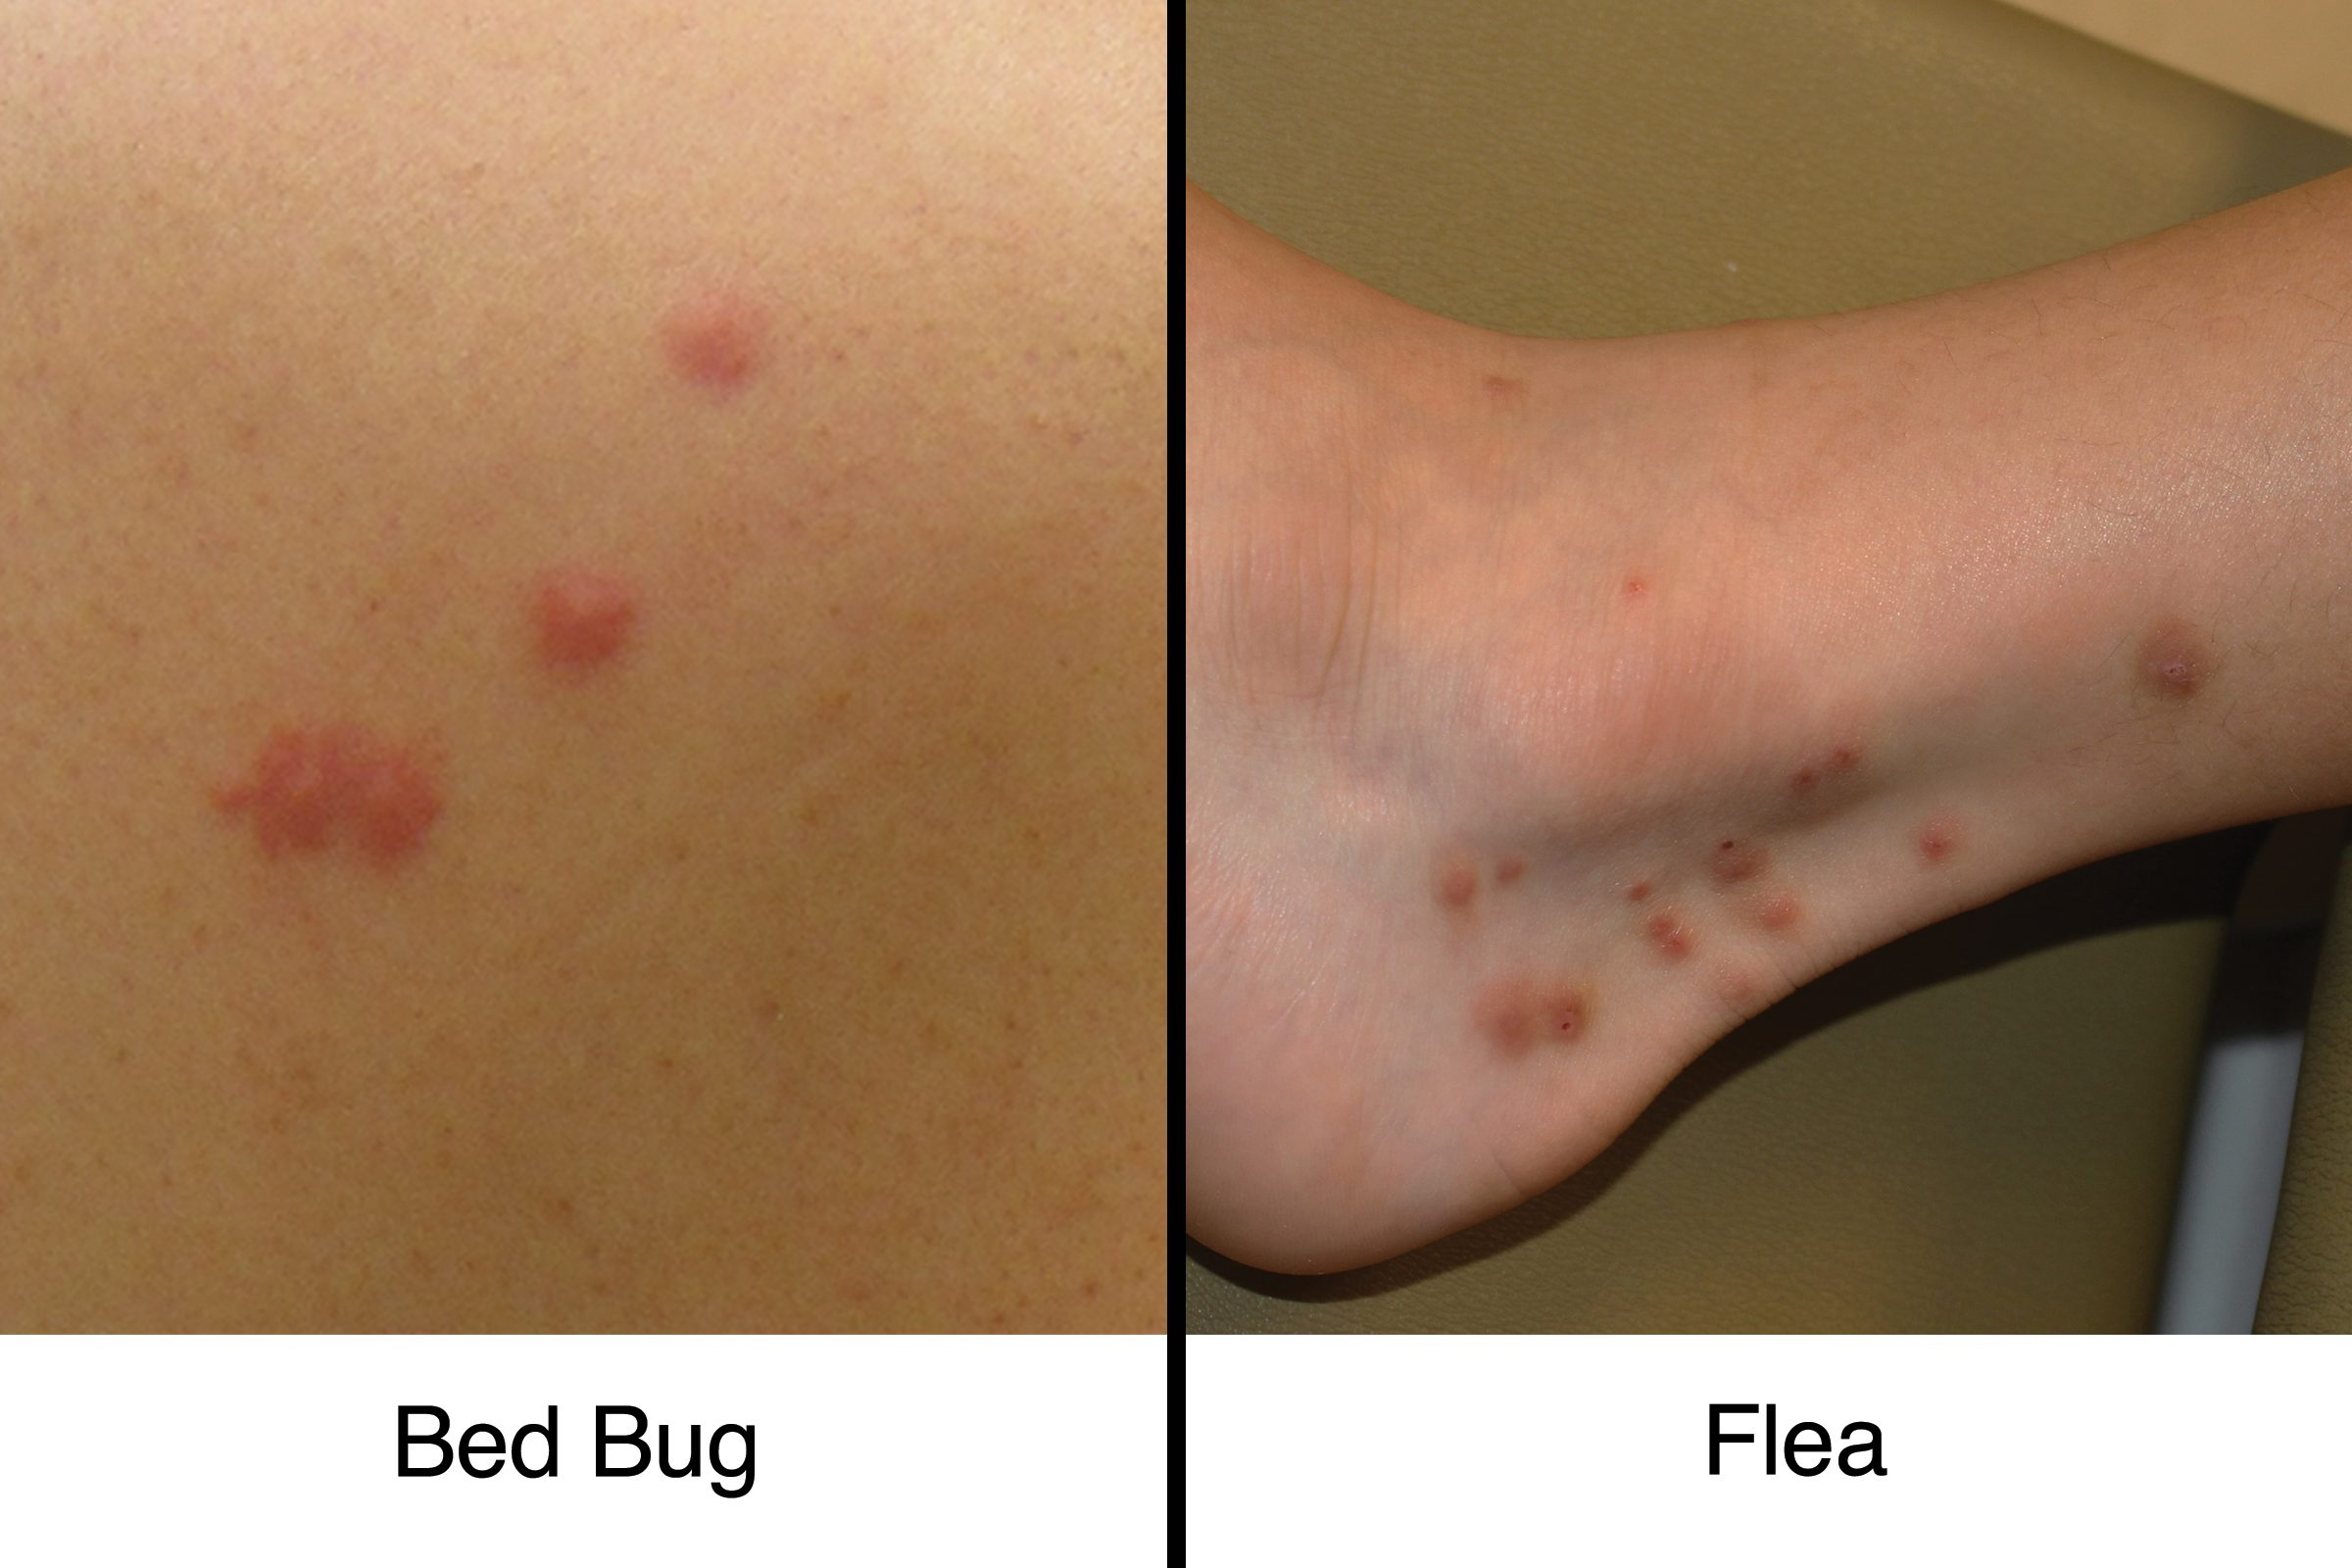 bed bug bites vs flea bites